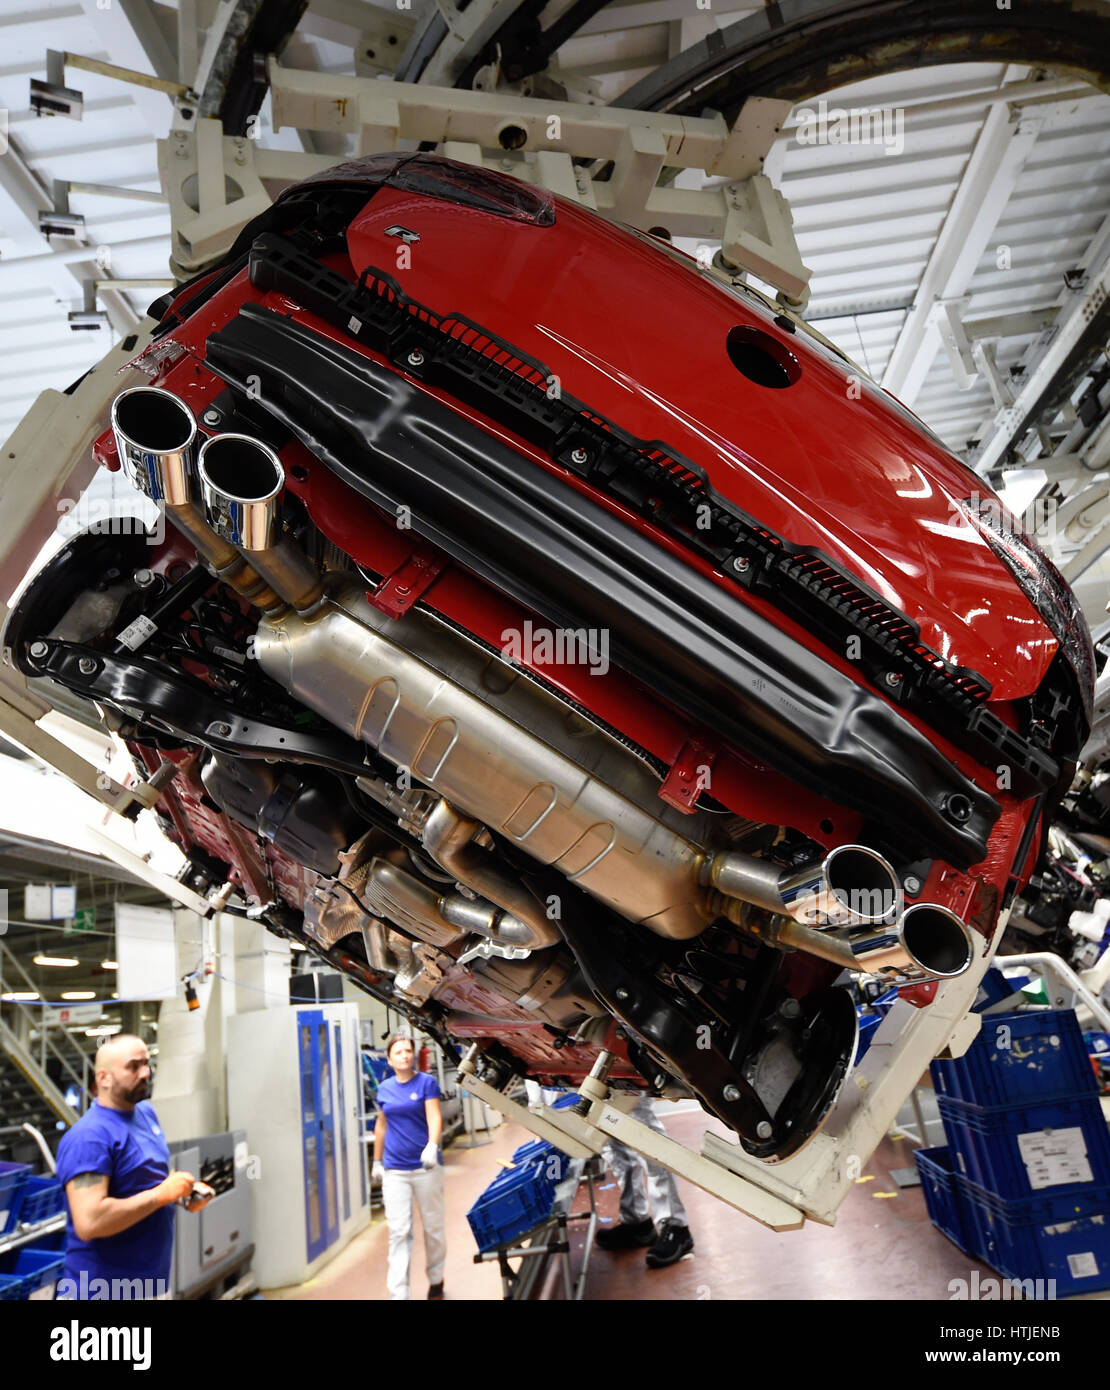 Exhaust systems of Volkswagen Golf cars are seen in a production line at the companies headquarter in Wolfsburg, - Stock Image